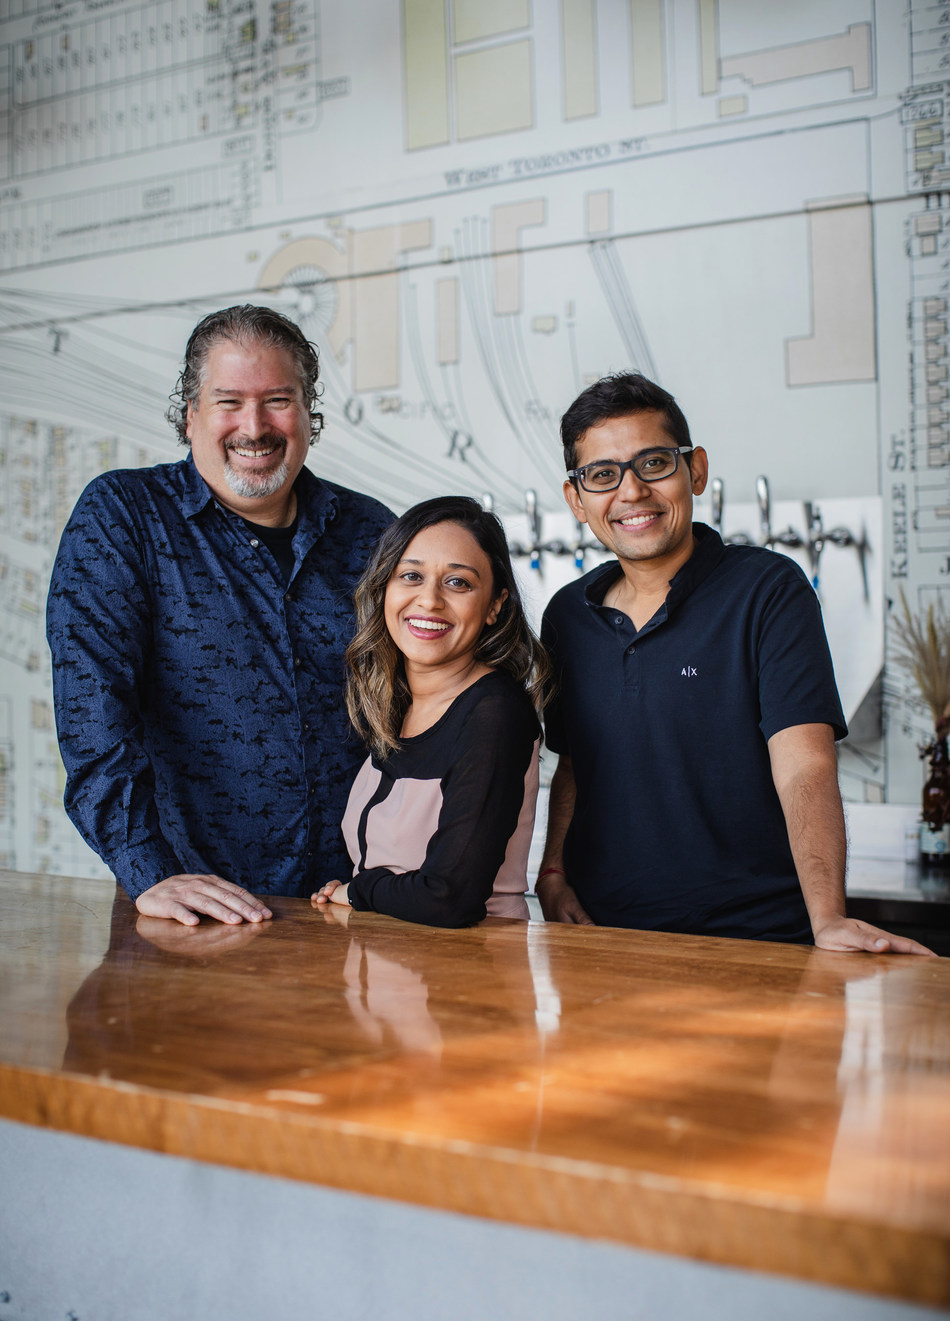 Wagepoint Announces Strategic Investment by Providence Strategic Growth. From left to right: Ryan Dineen (Co-Founder & Chief Architect), Leena Thampan (CPO), and Shrad Rao (Co-Founder & CEO). (CNW Group/Wagepoint)